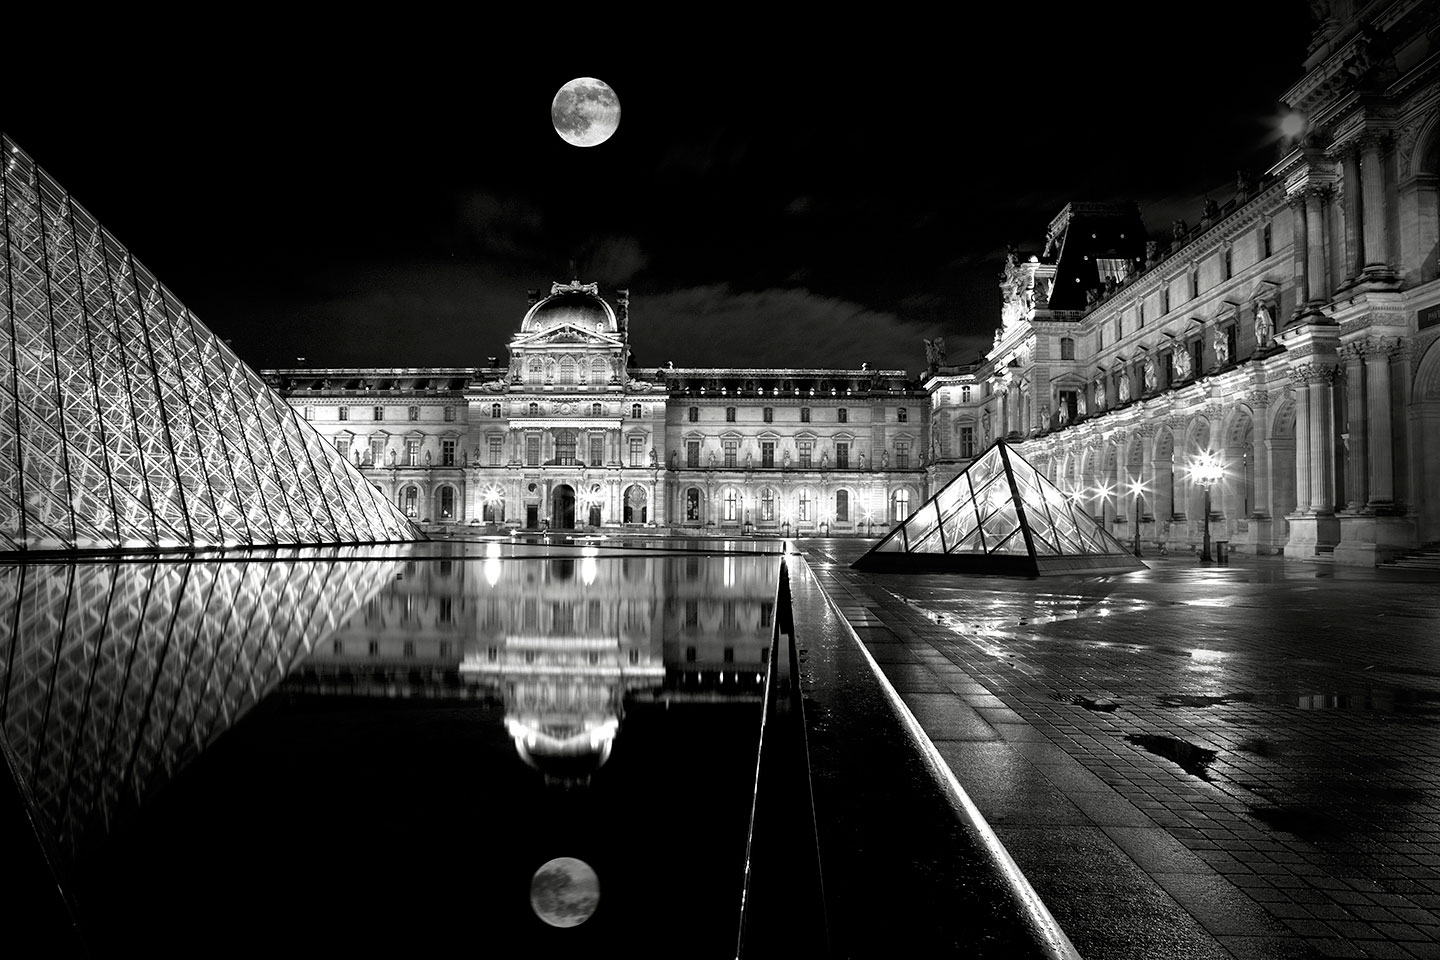 Full moon over Louvre museum